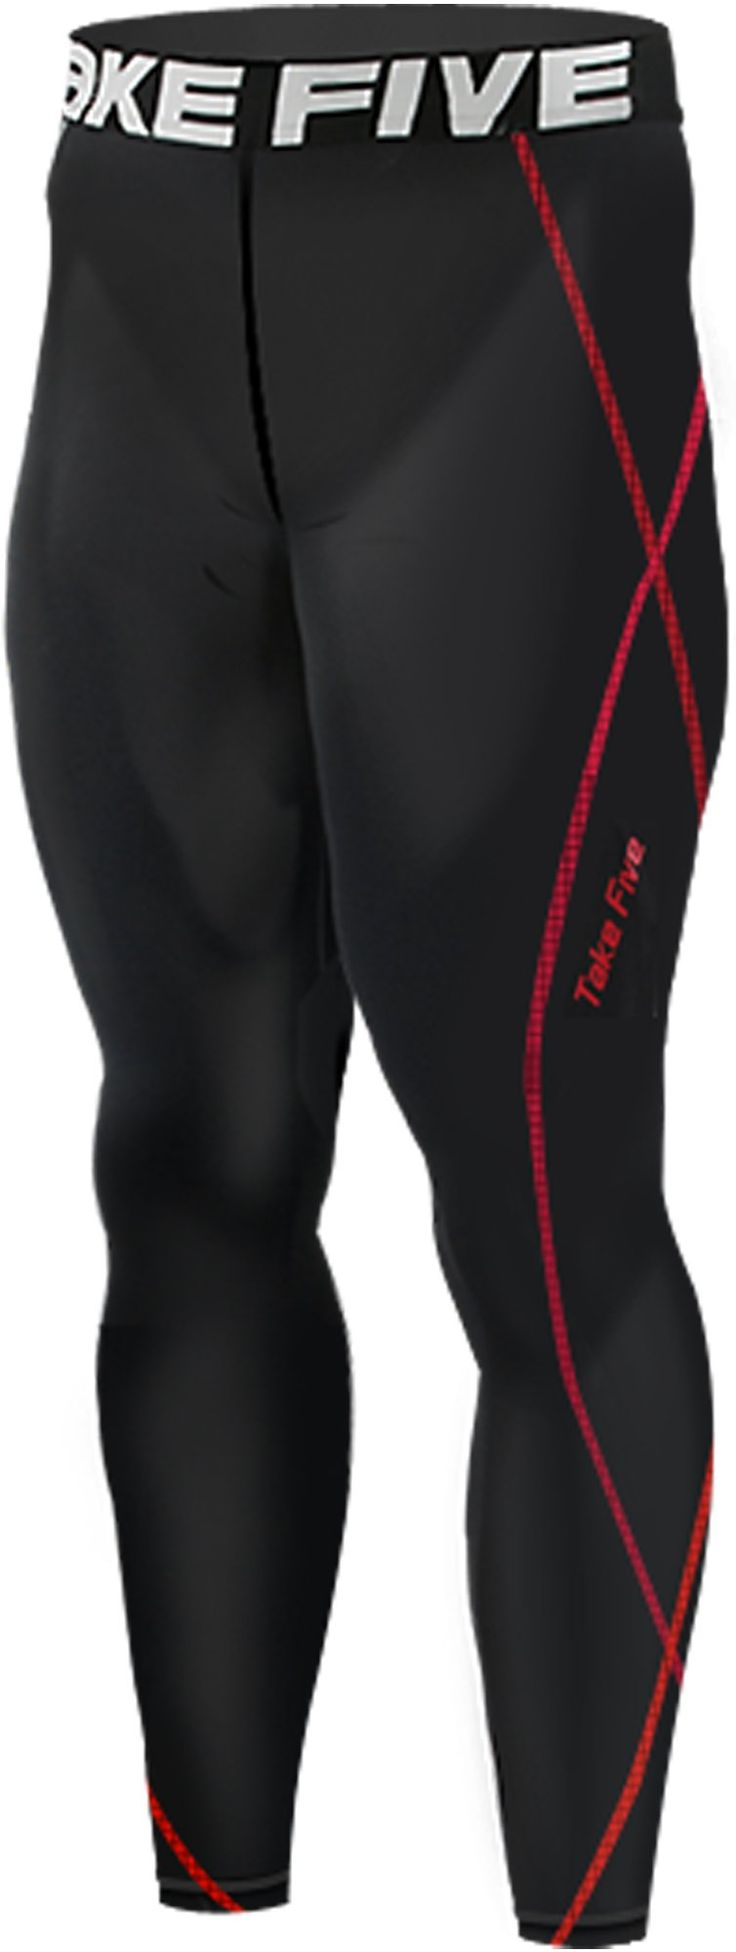 New 197 Black Skin Tights Compression Leggings Base Layer Running Pants Mens (M). Mens long Pants compression Tights made using Take Five technology. Compression fit bolsters muscle support and increases circulation. UVA/UVB Protection - Take Five compressoin protects your skin from UVA/UVB radiation during your outdoor workout. Great for skiing, snowboarding, training, competing, and all weather sports and activities. Machine washable.